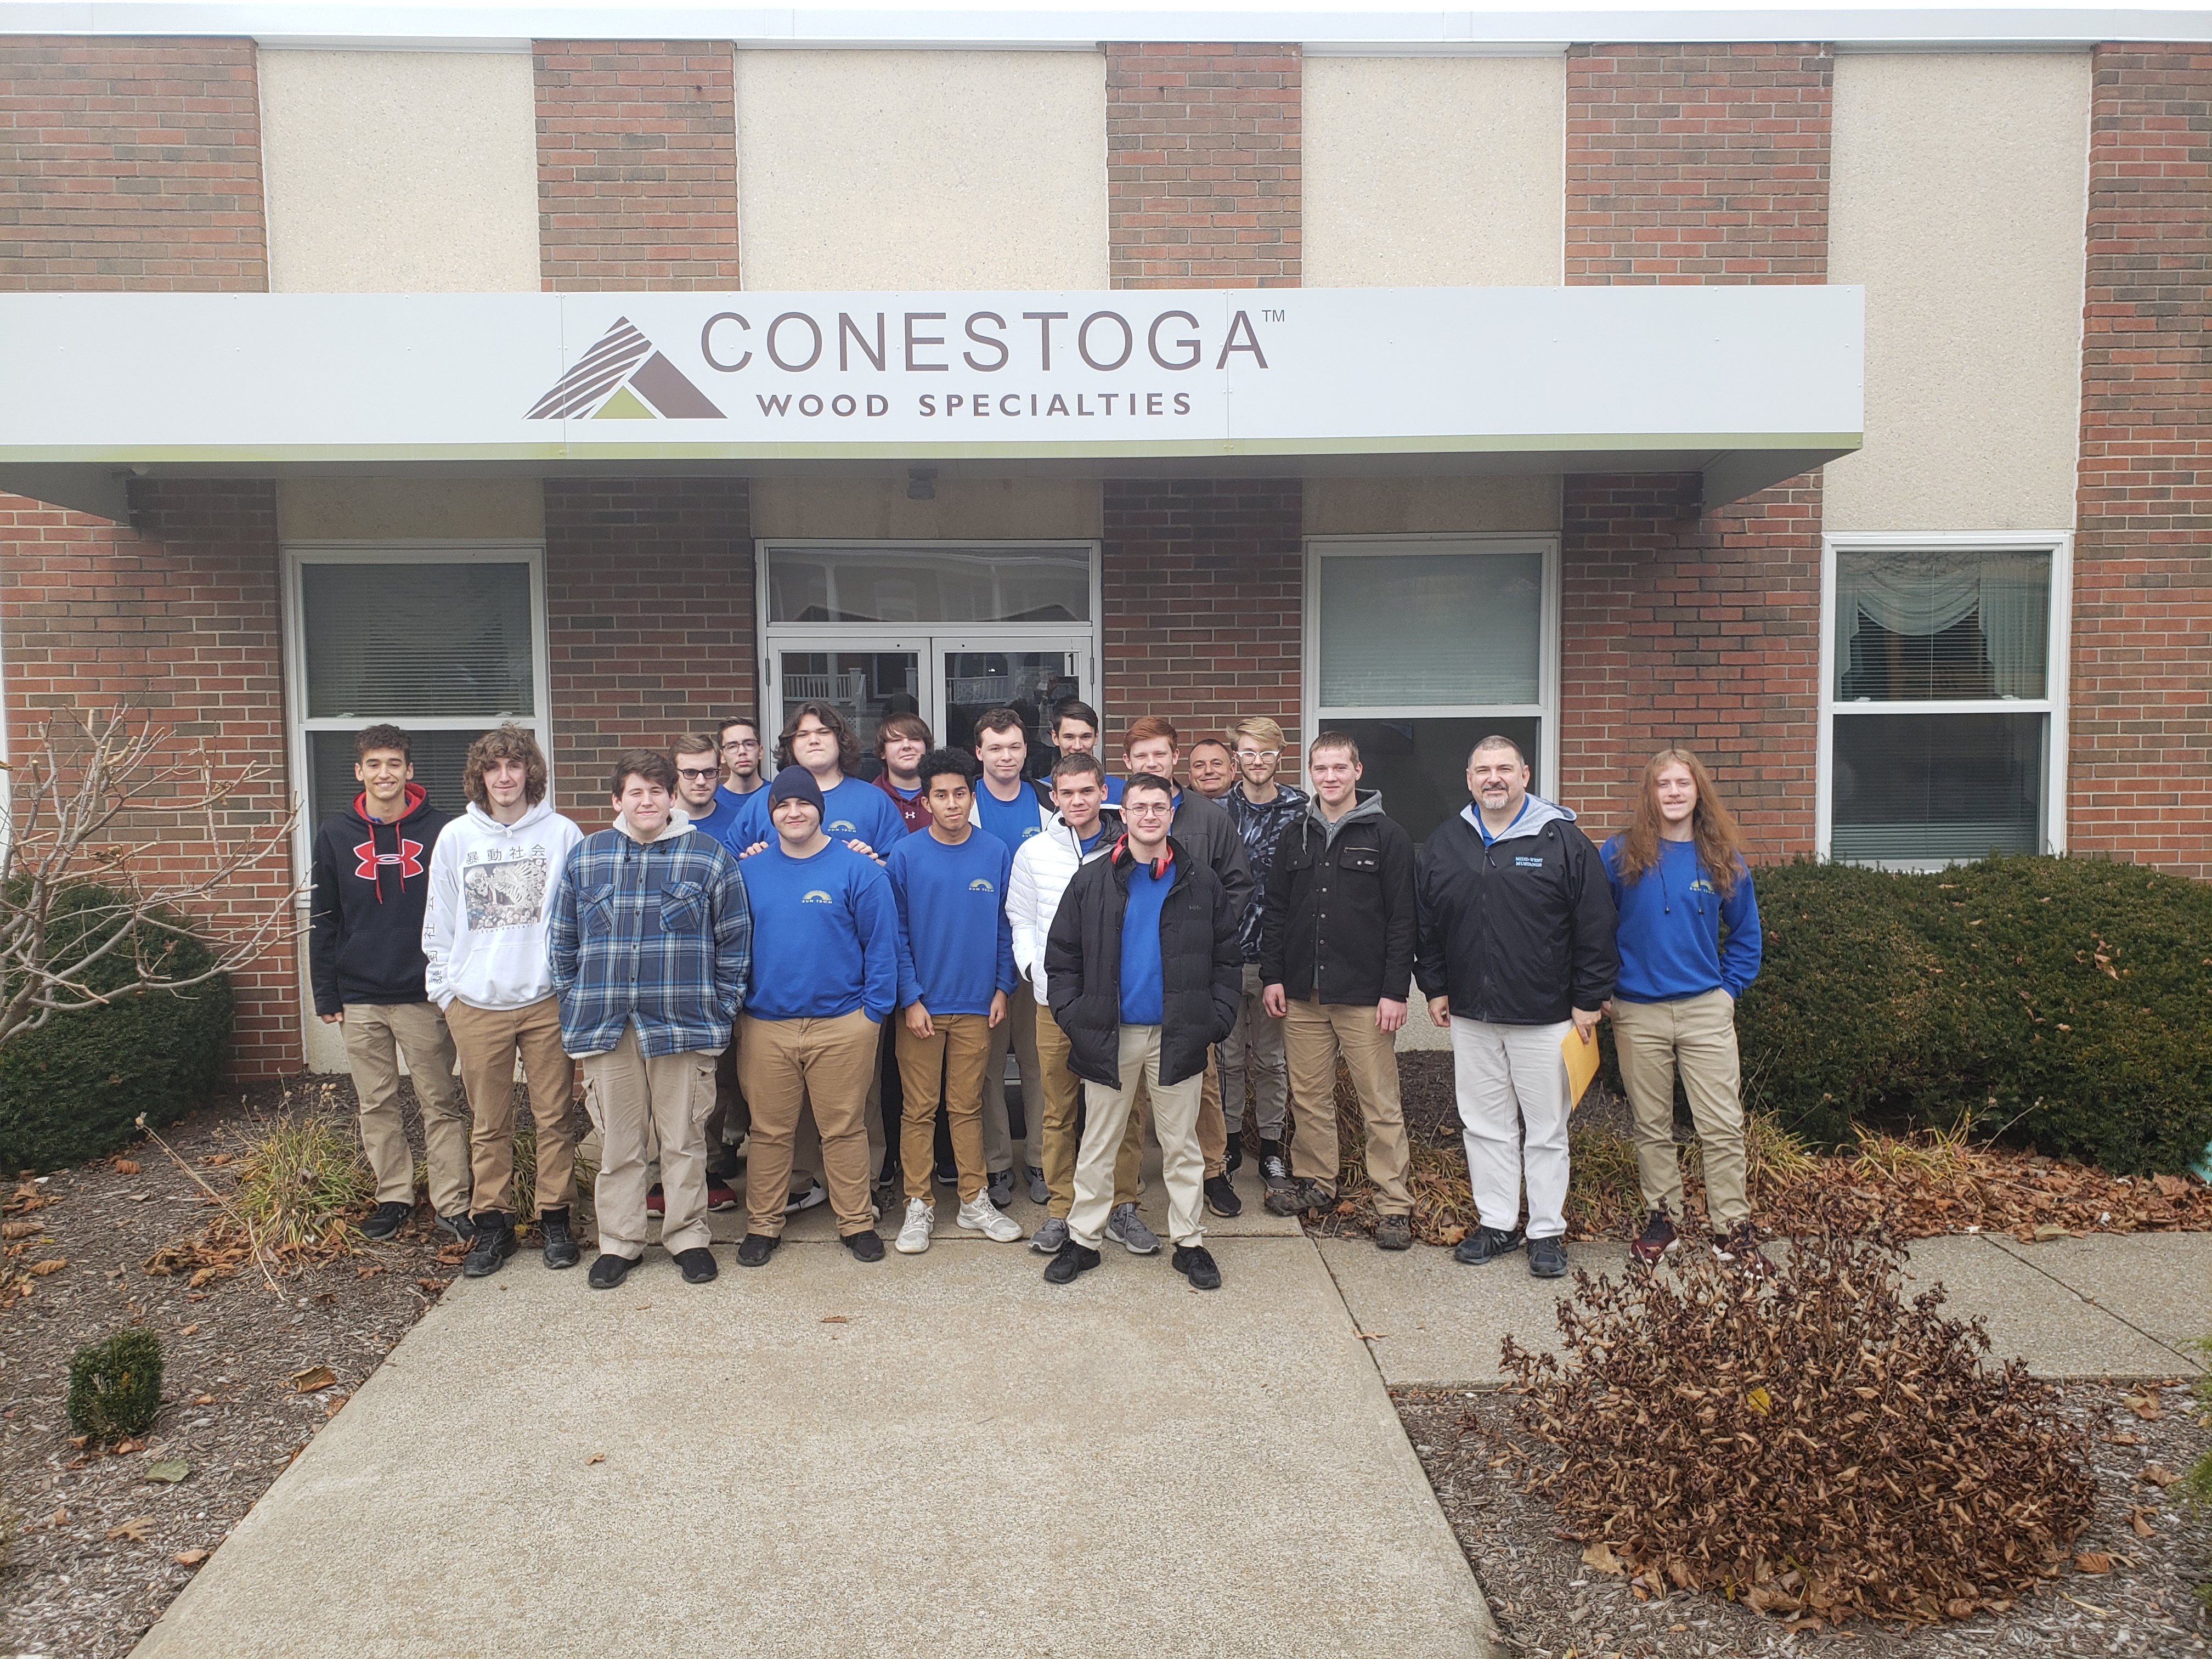 Conestoga Wood Specialties